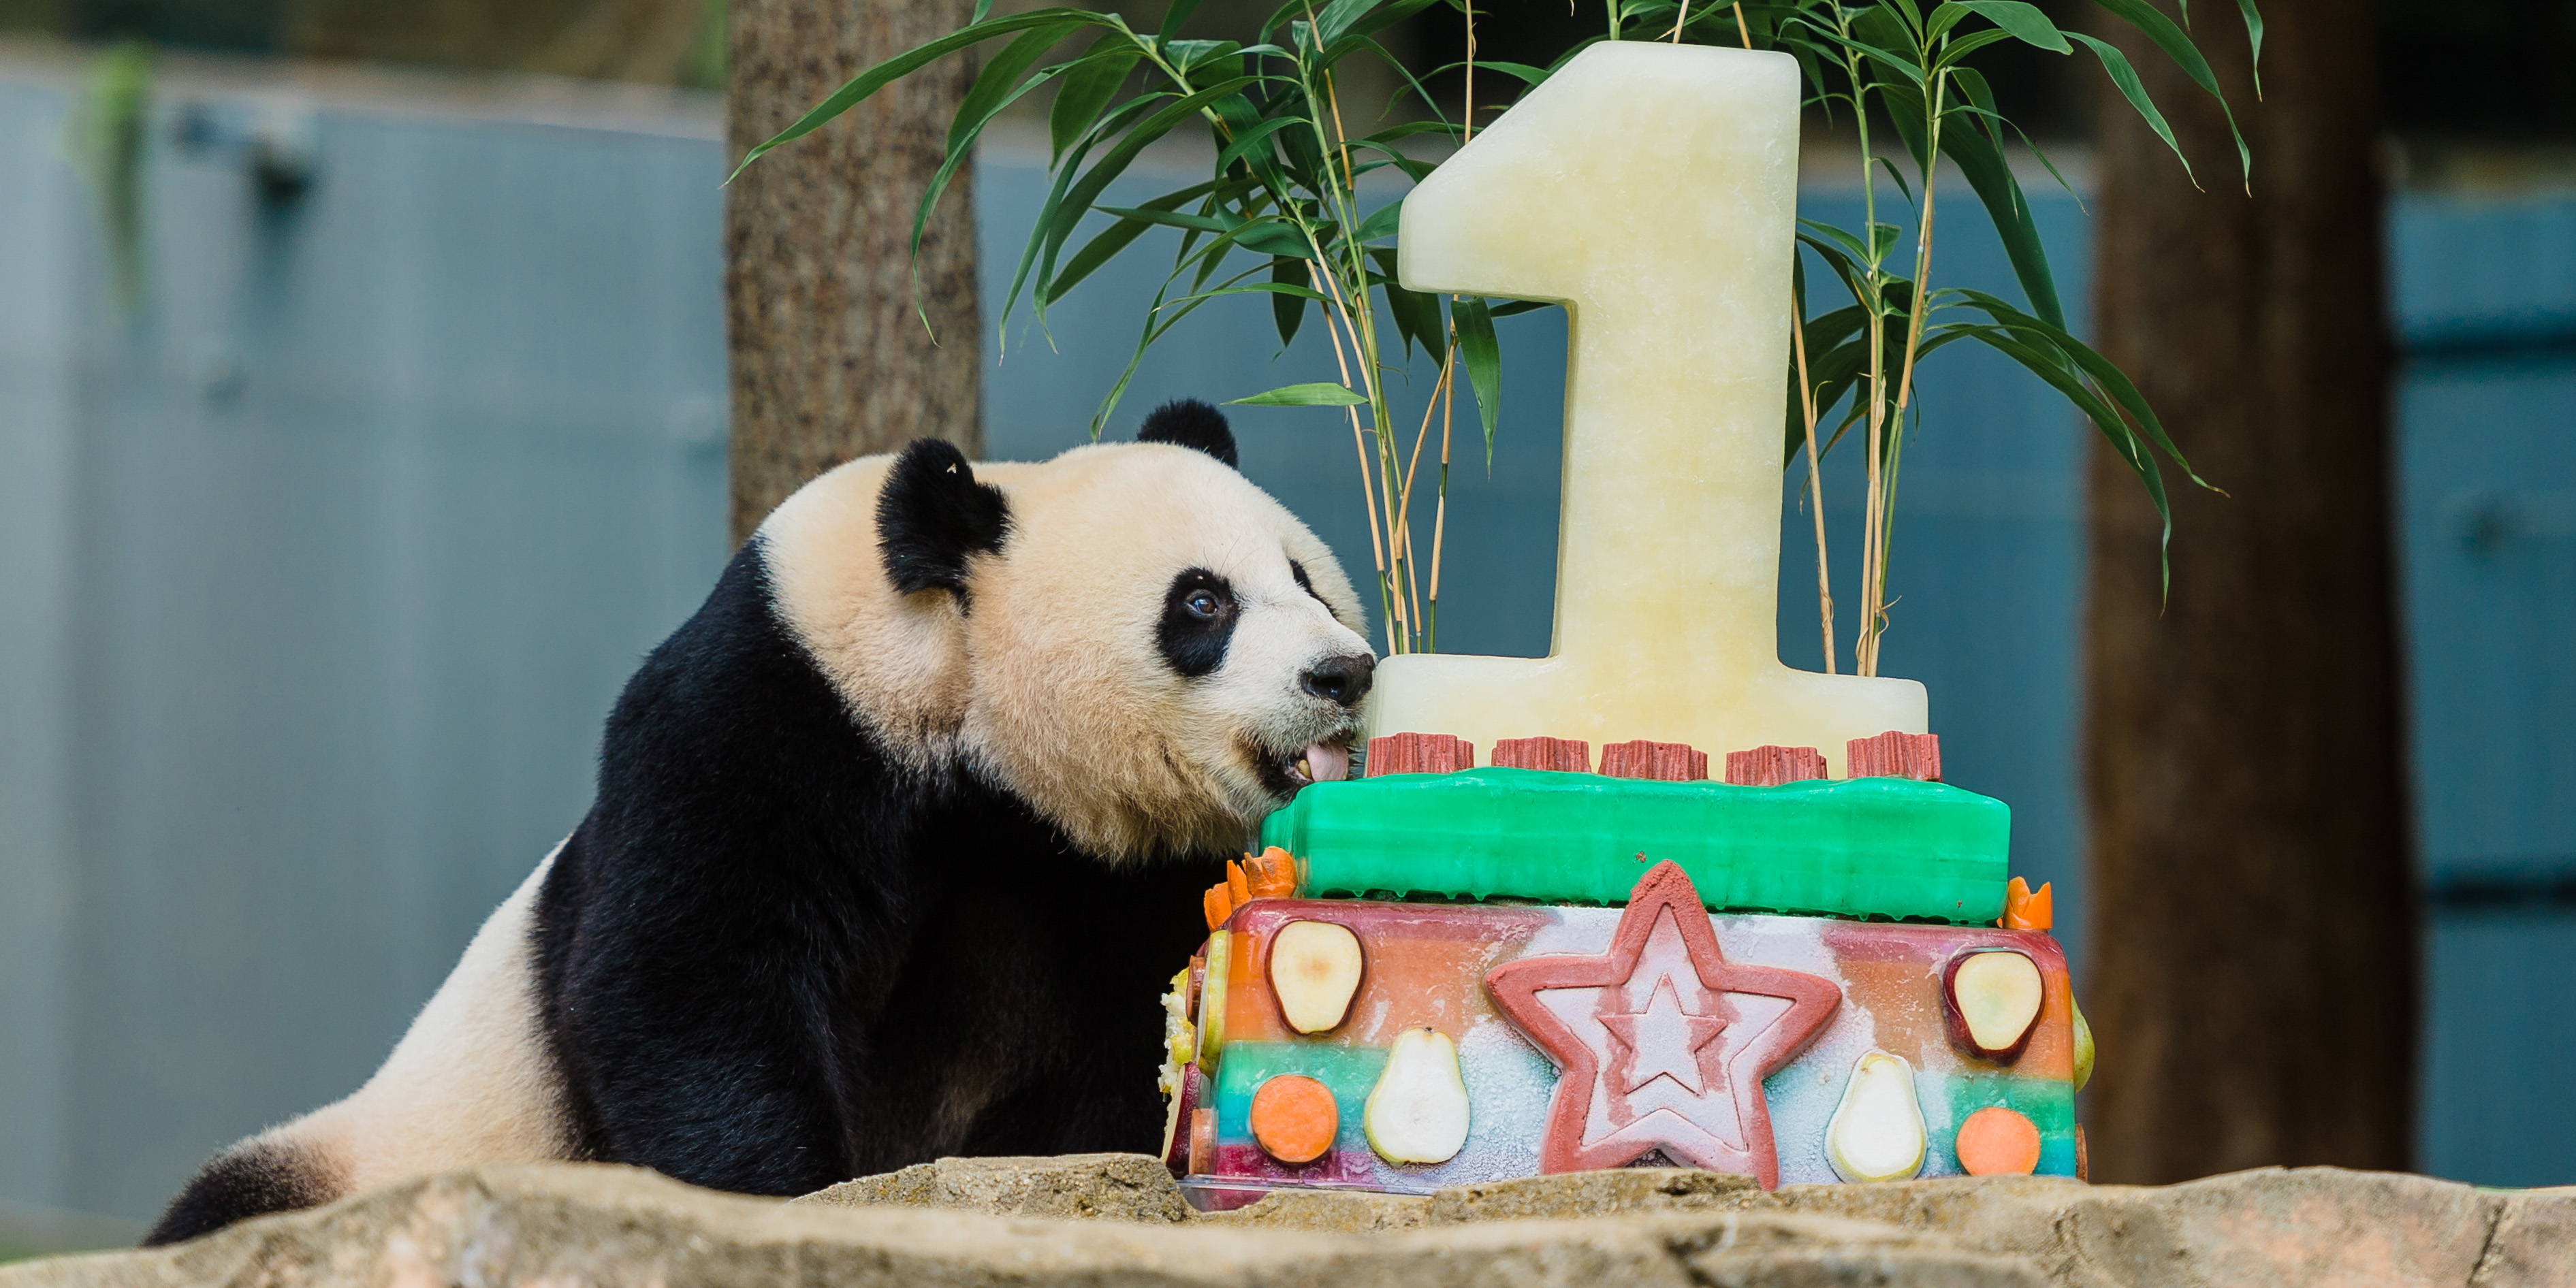 Mei Xiang with food enrichment